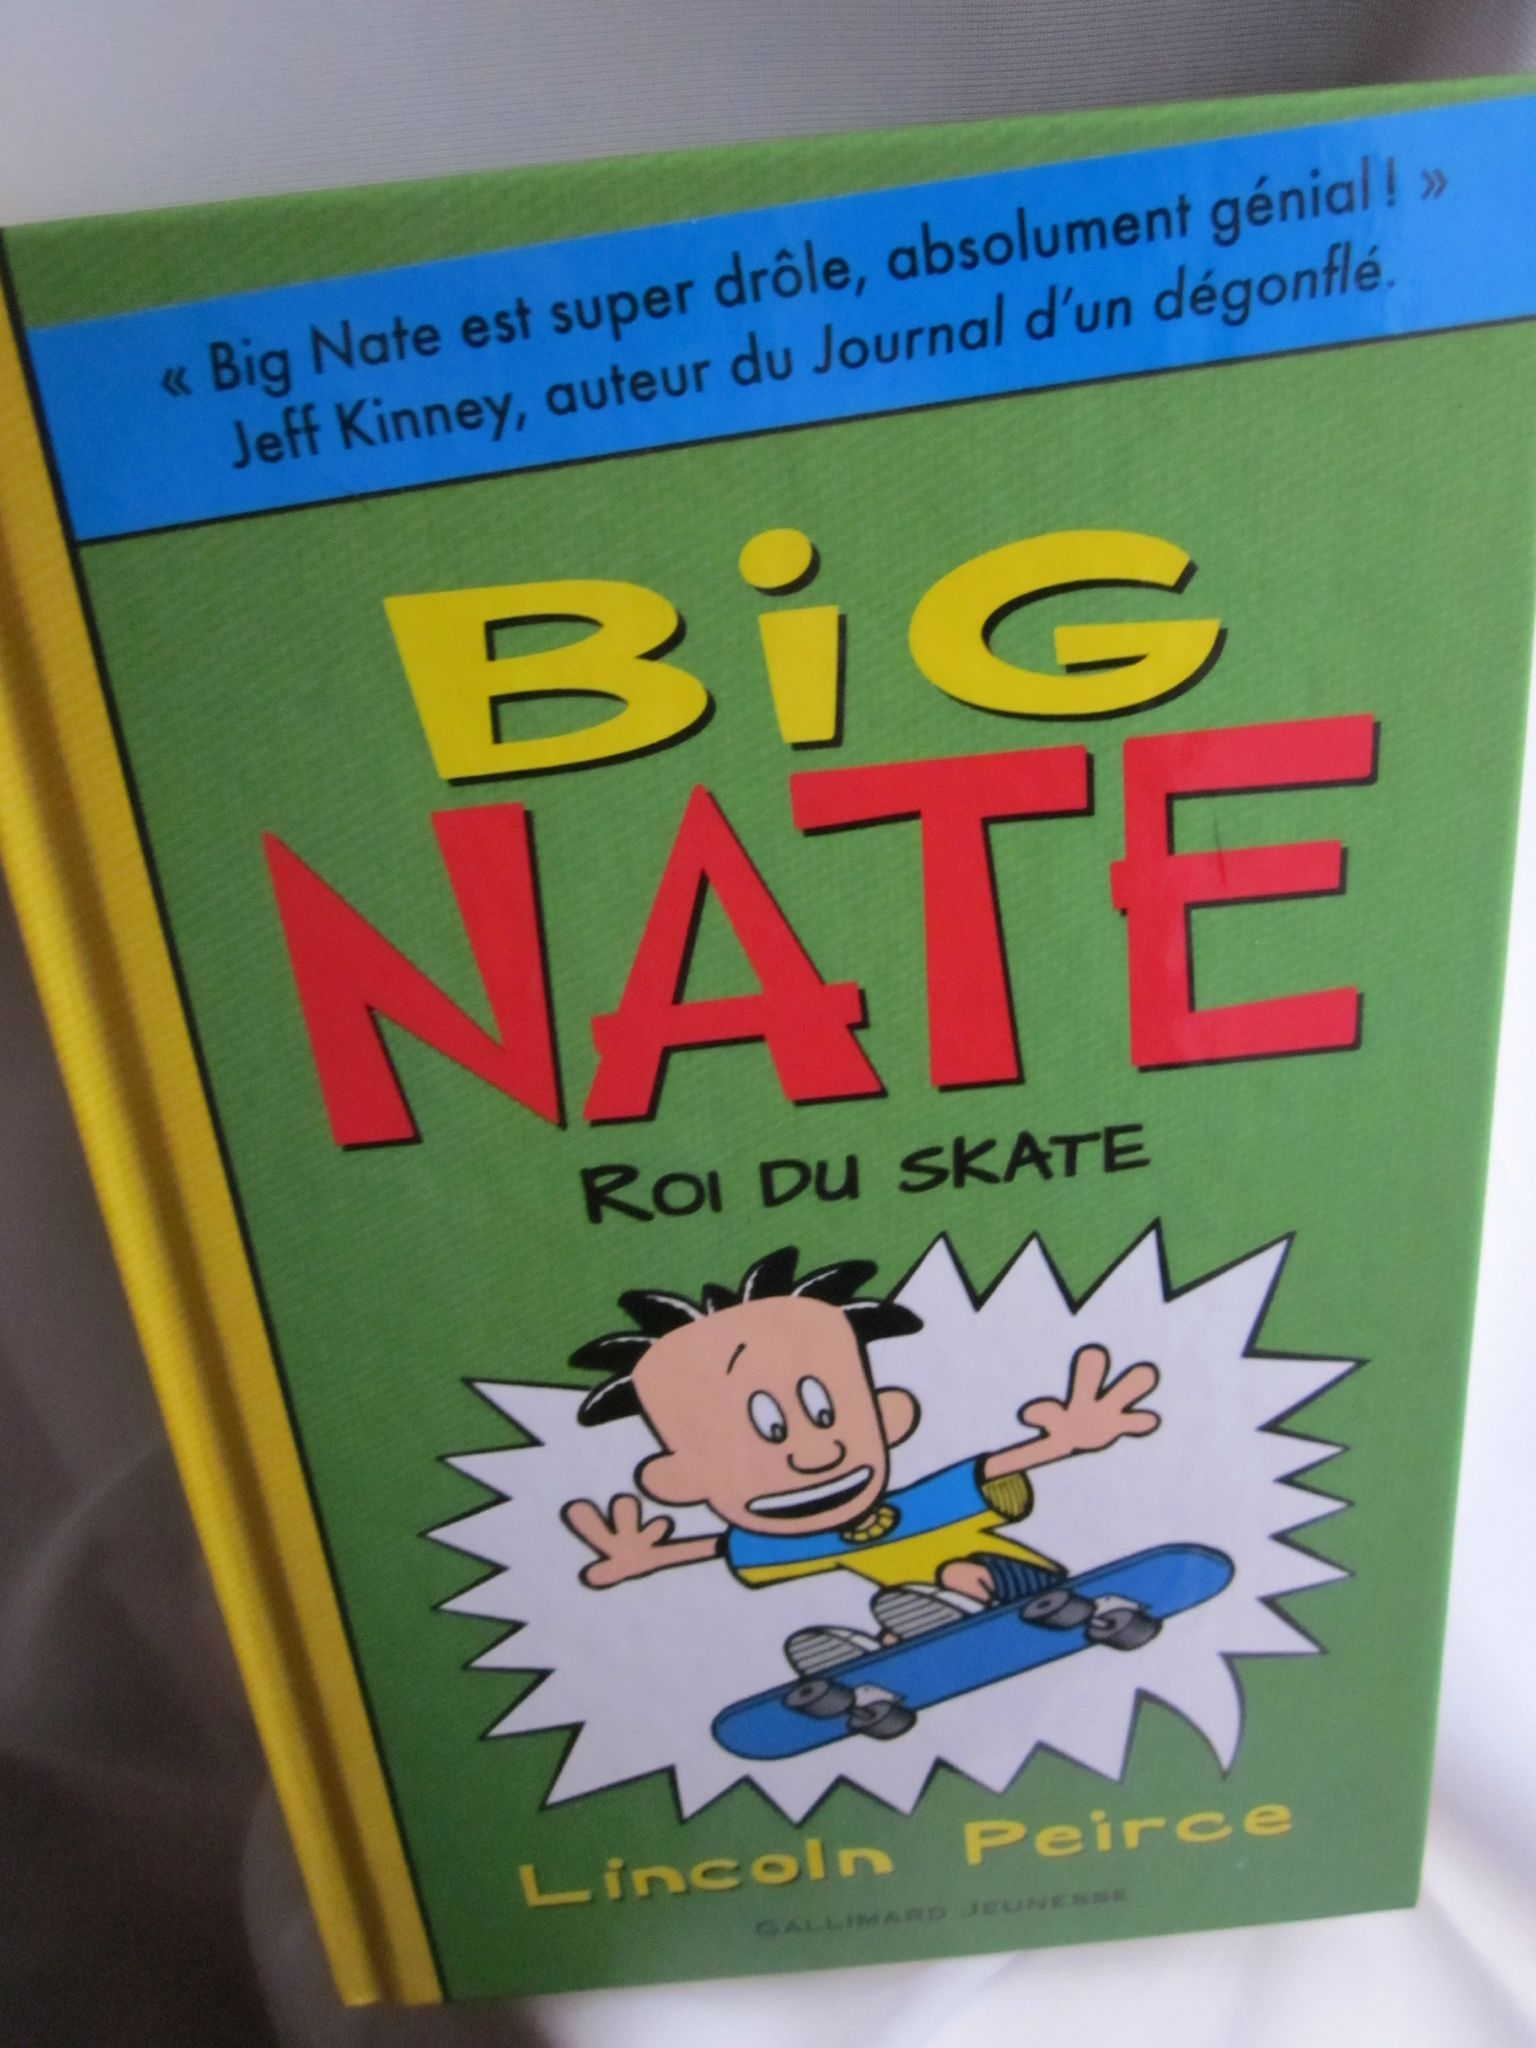 BIG NATE Lot 12 Lincoln Pierce Books Goes for Broke Flips Out Out Loud from Top